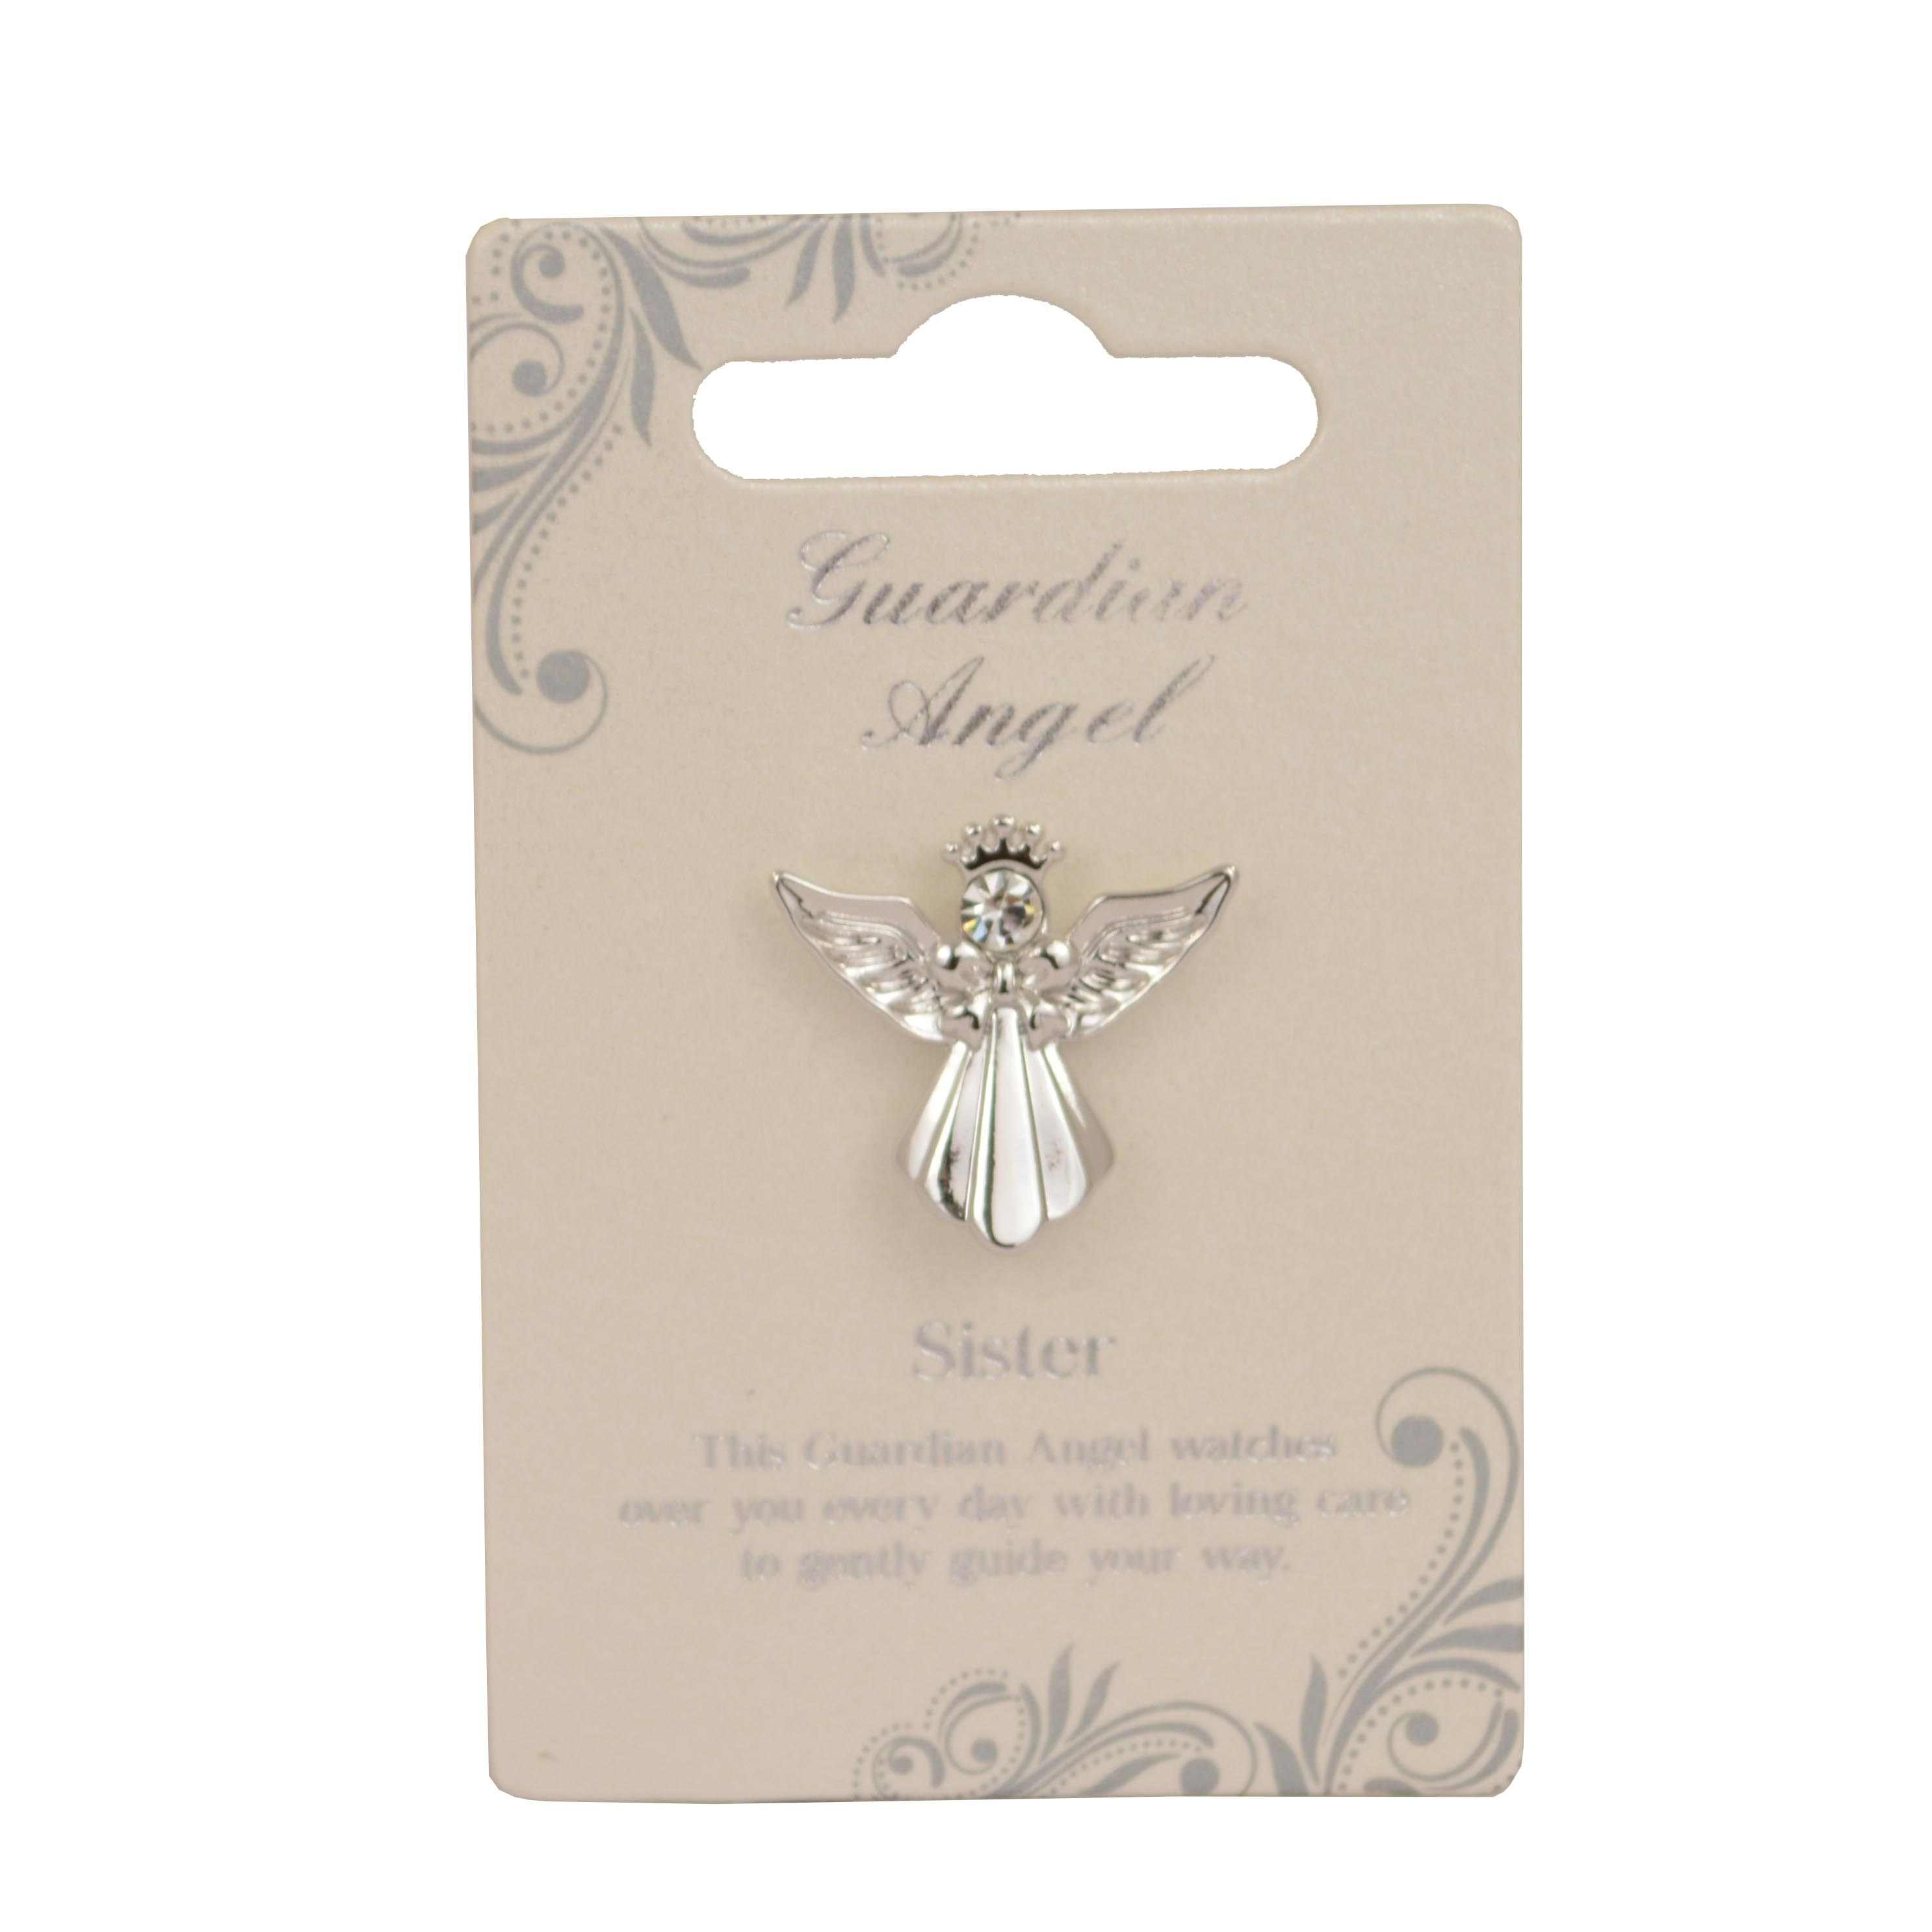 Sister Guardian Angel Silver Coloured Angel Pin With Gem Stone Gifts